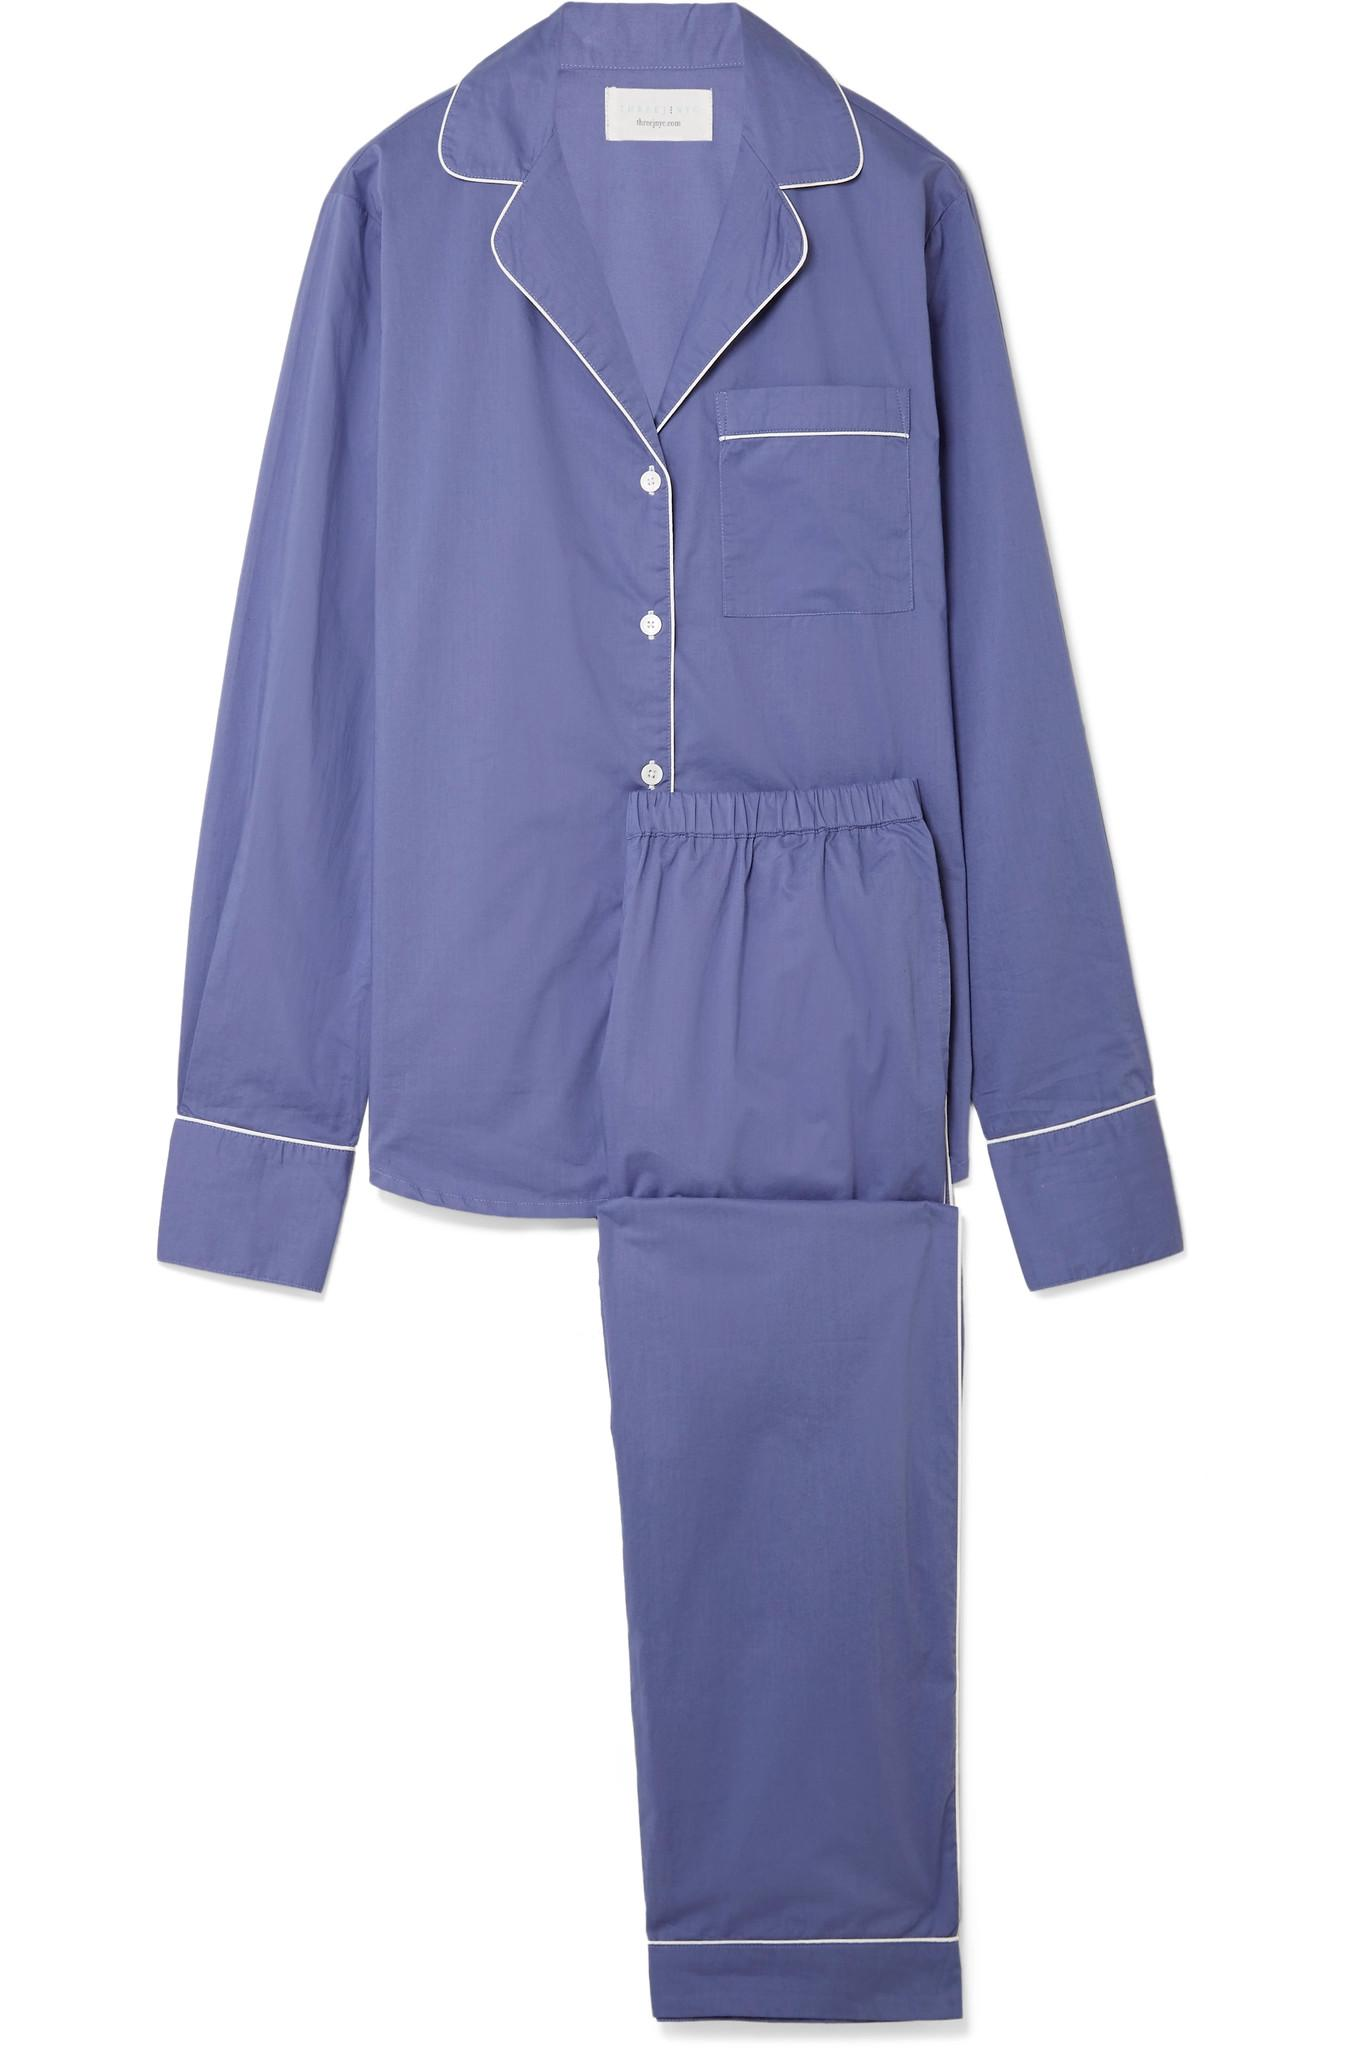 Moss Cotton-poplin Pajama Set - Blue Three J NYC Cheap Sale Shop For Clearance Get Authentic Cheap Supply Cheap Sale 2018 New 4ufXu